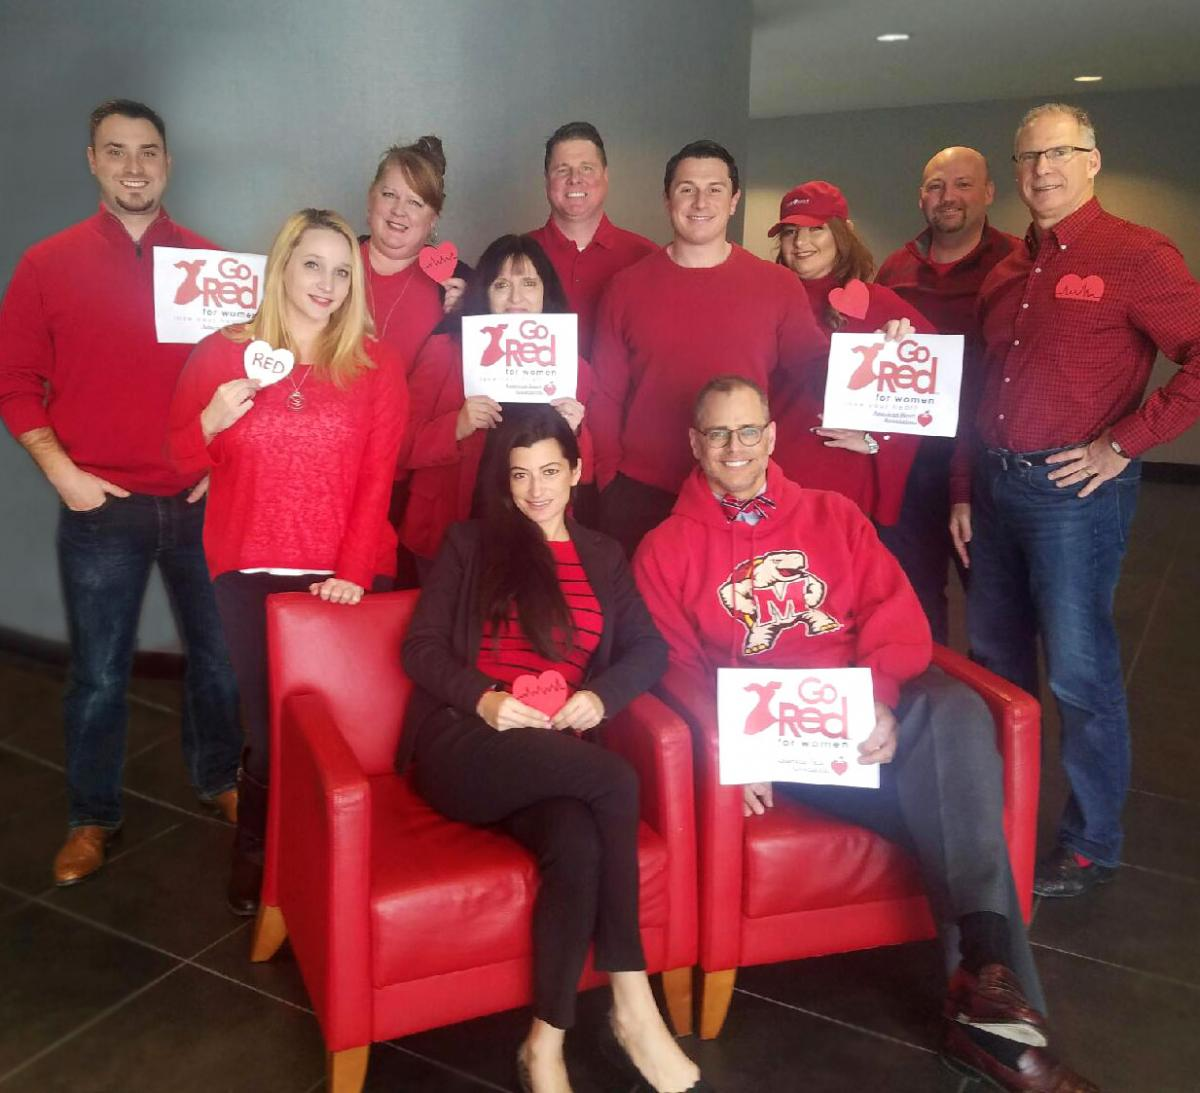 TSG Financial on National Wear Red Day 2017